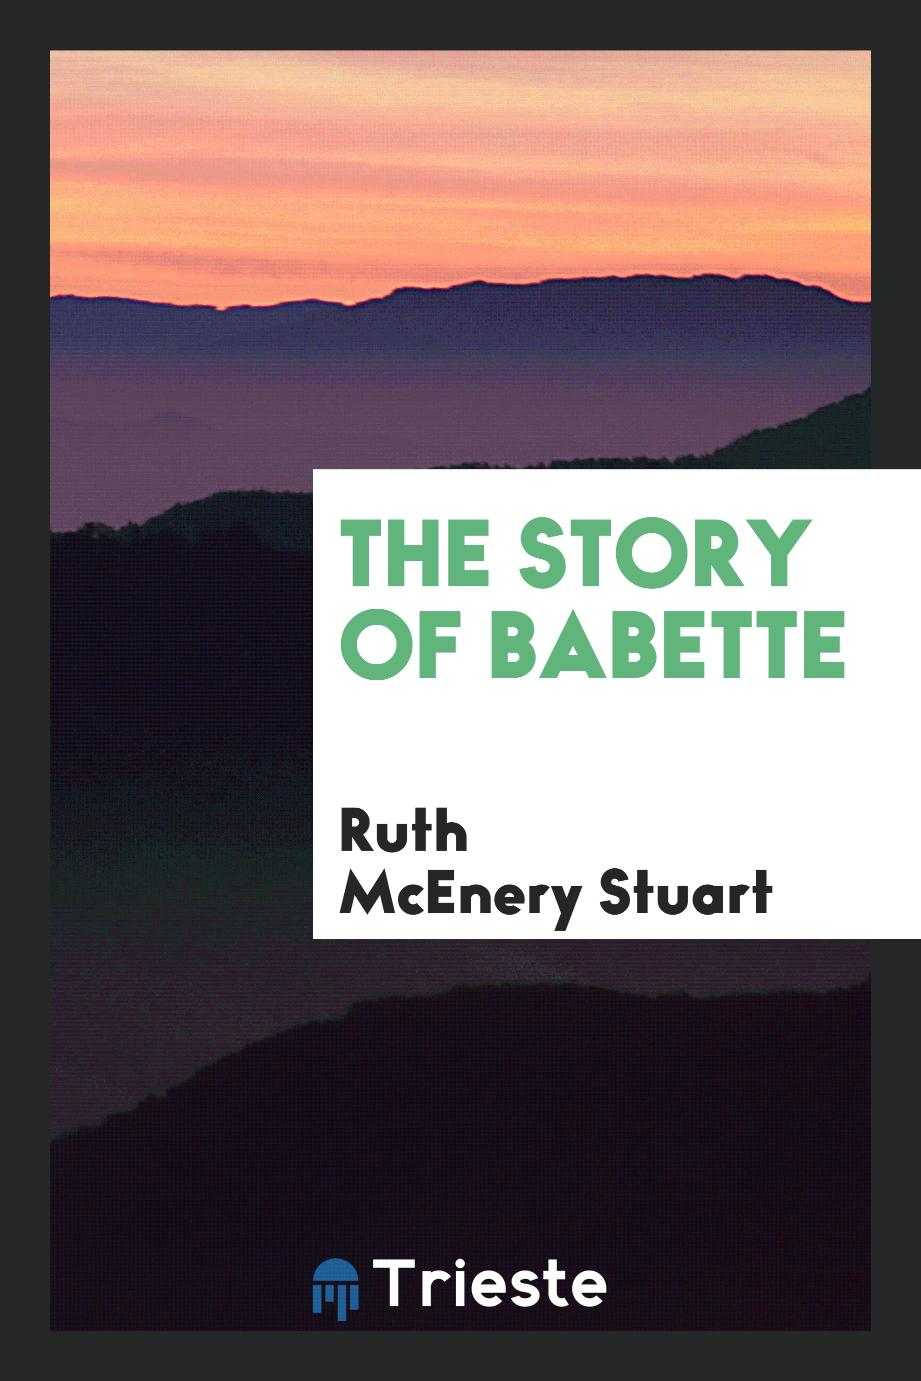 The story of Babette